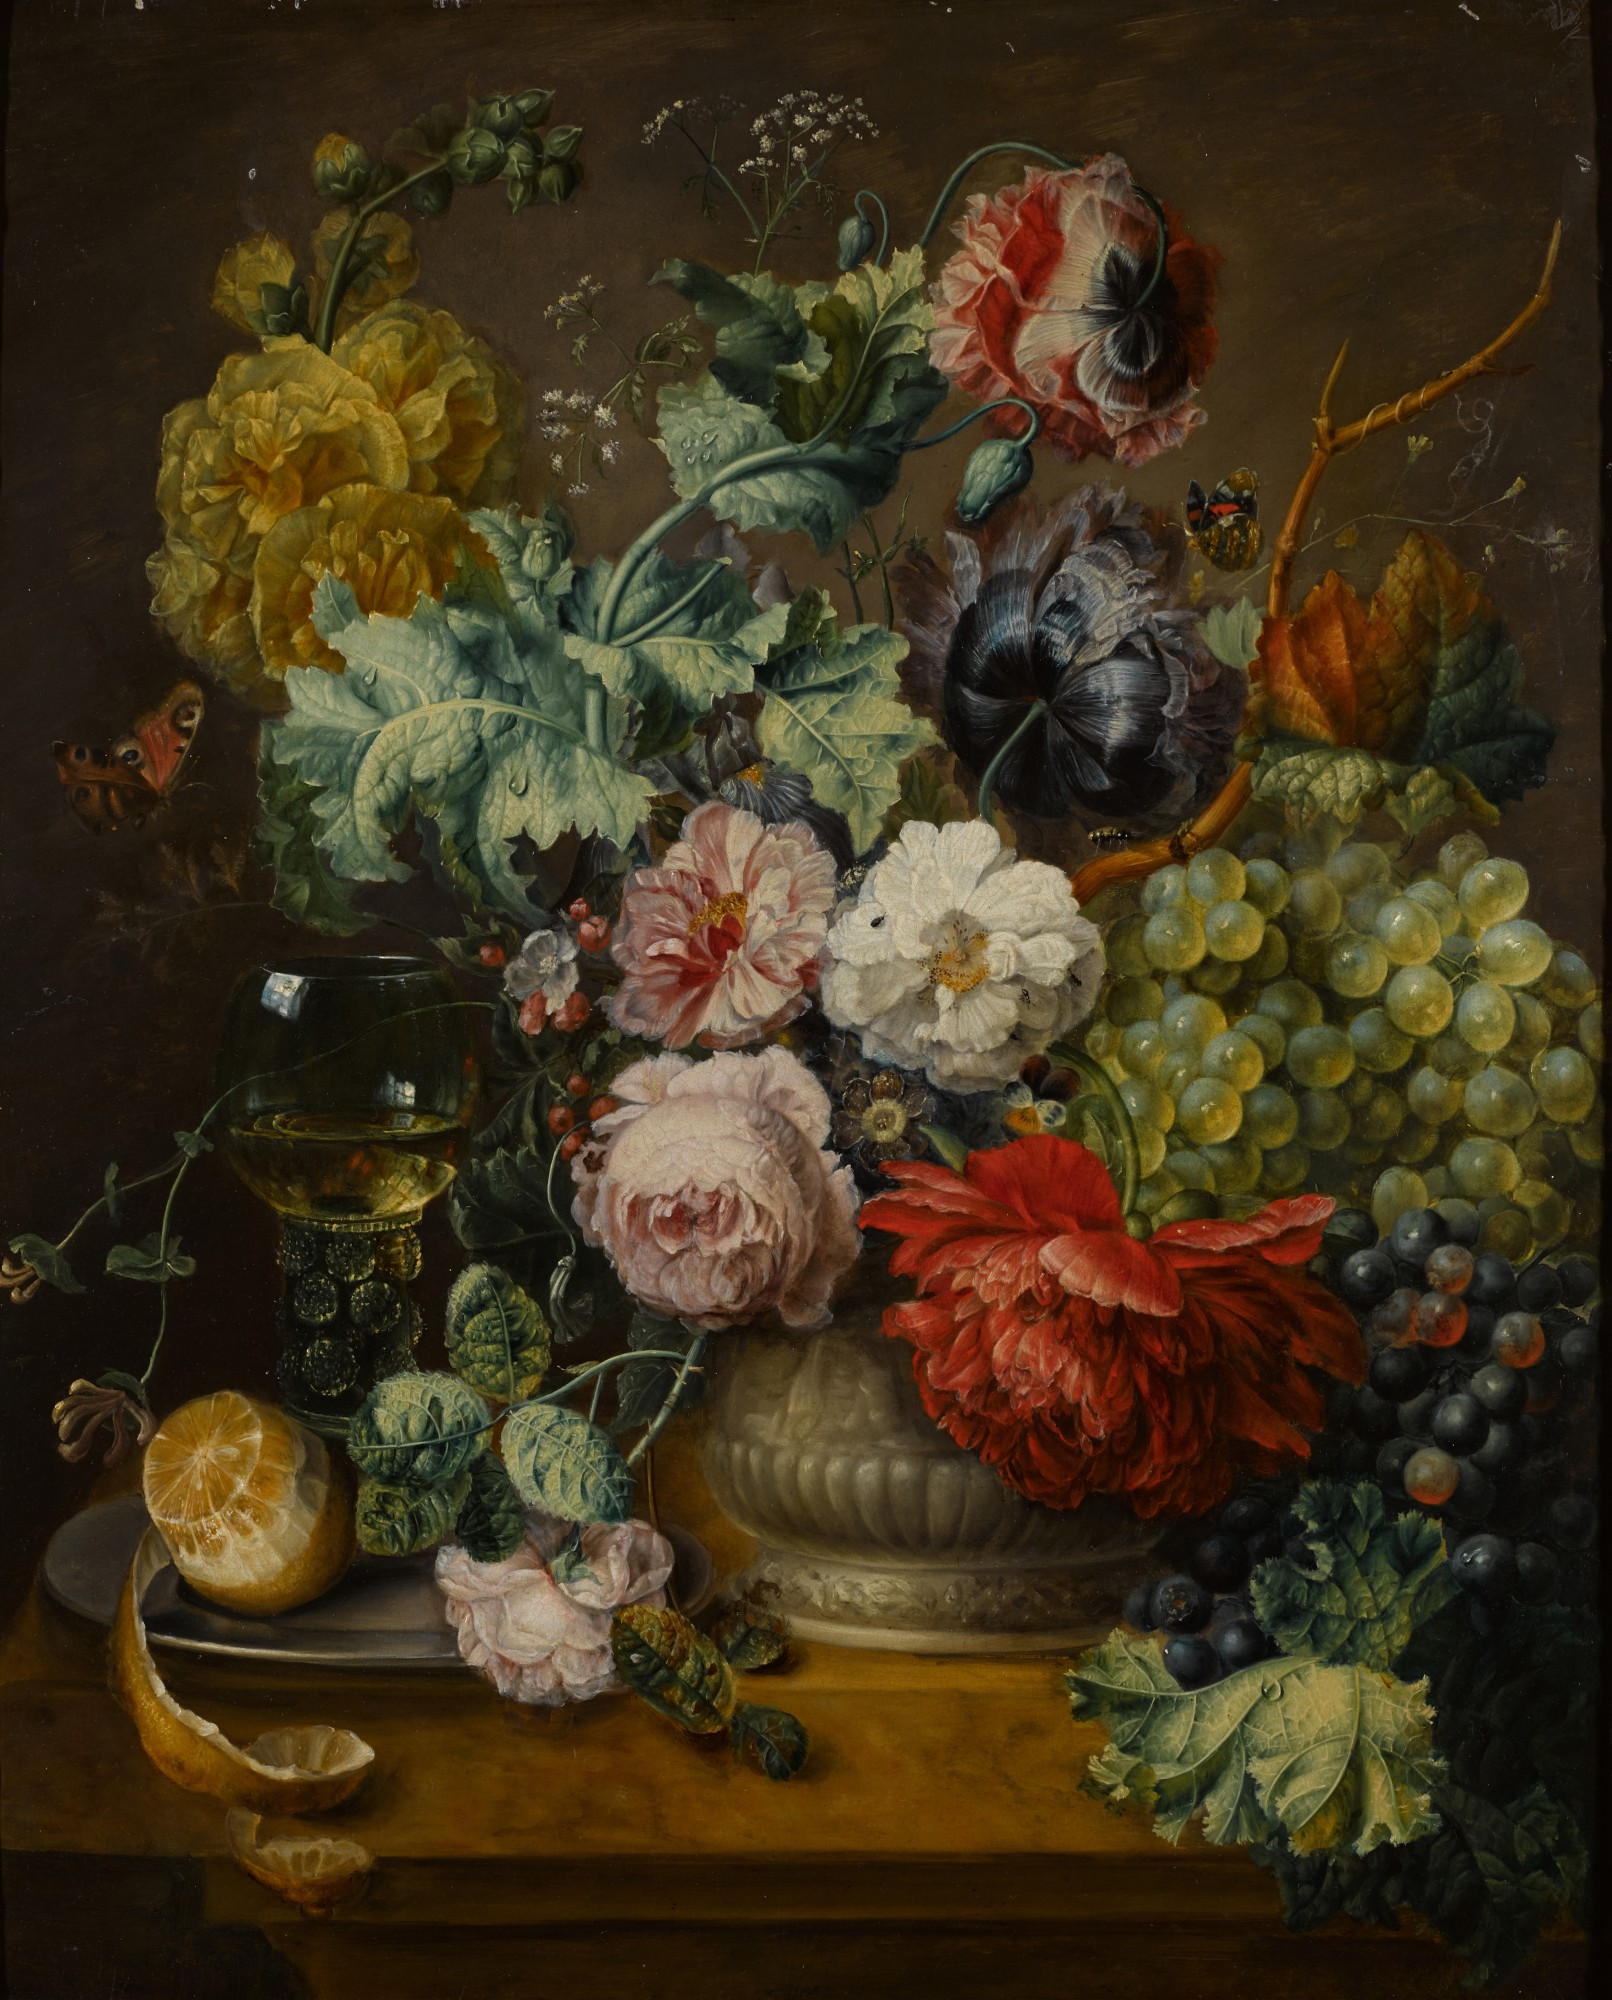 FOLLOWER OF CORNELIS VAN SPAENDONCK | Still life of summer flowers in a roemer on a marble ledge